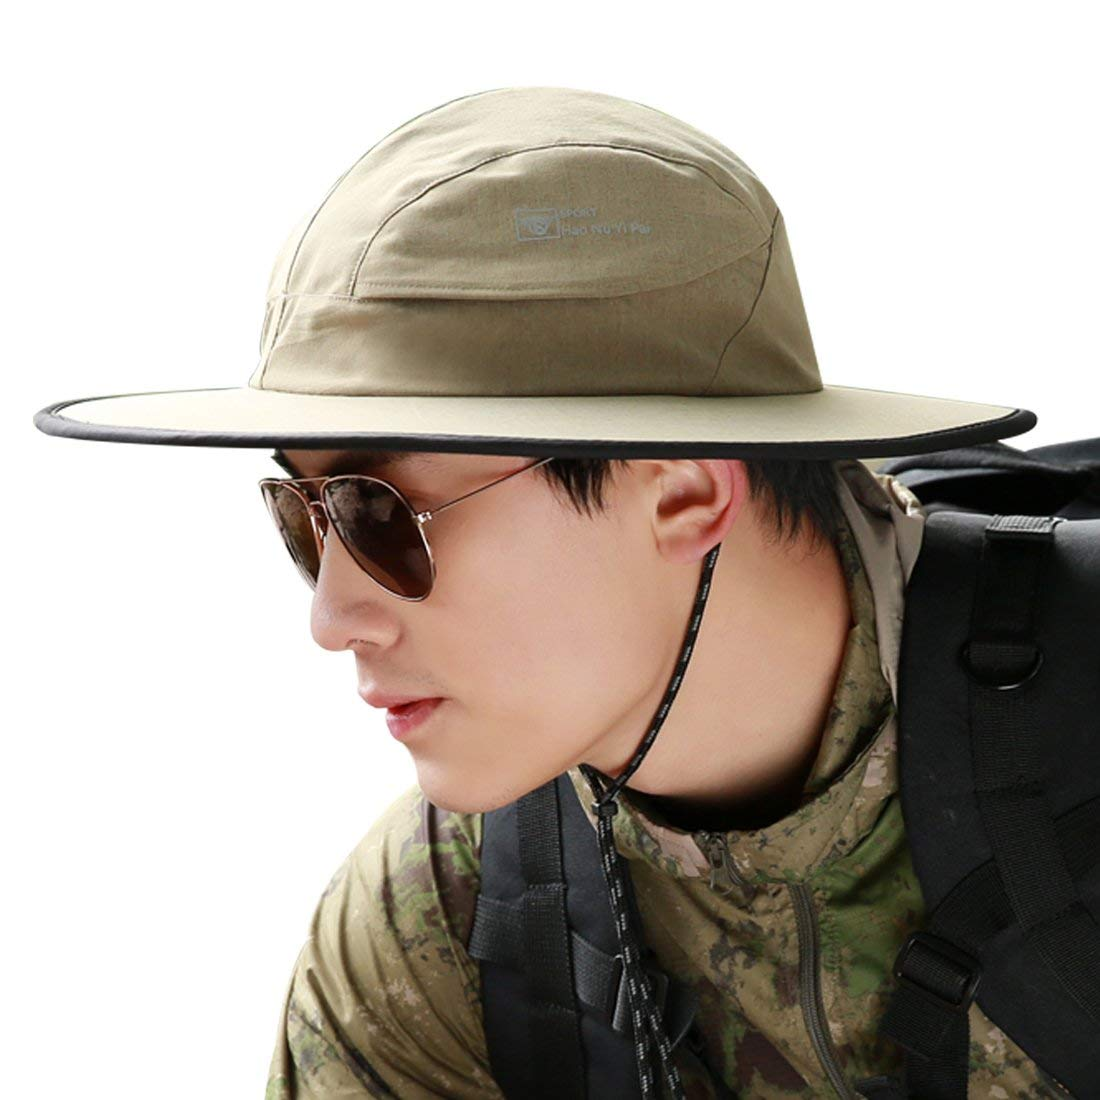 8ded466f Get Quotations · LLmoway Mens UPF50+ Sun Protection Hat Wide Brim  Waterproof Breathable Safari Hat